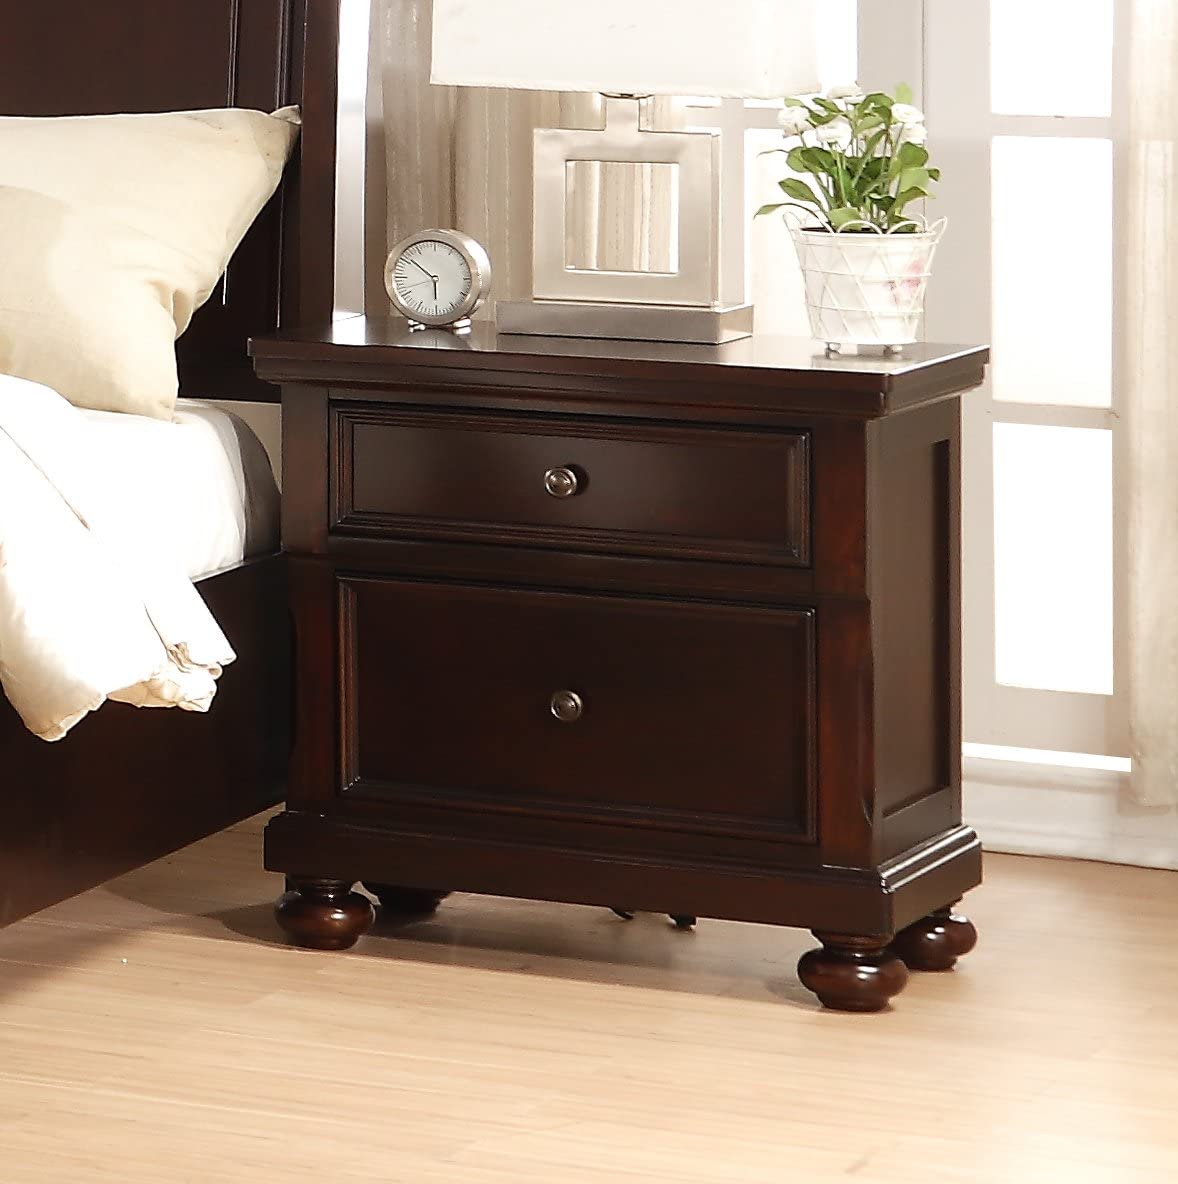 Roundhill Furniture Brishland 2 Drawers Bedroom Nightstand, Rustic Cherry